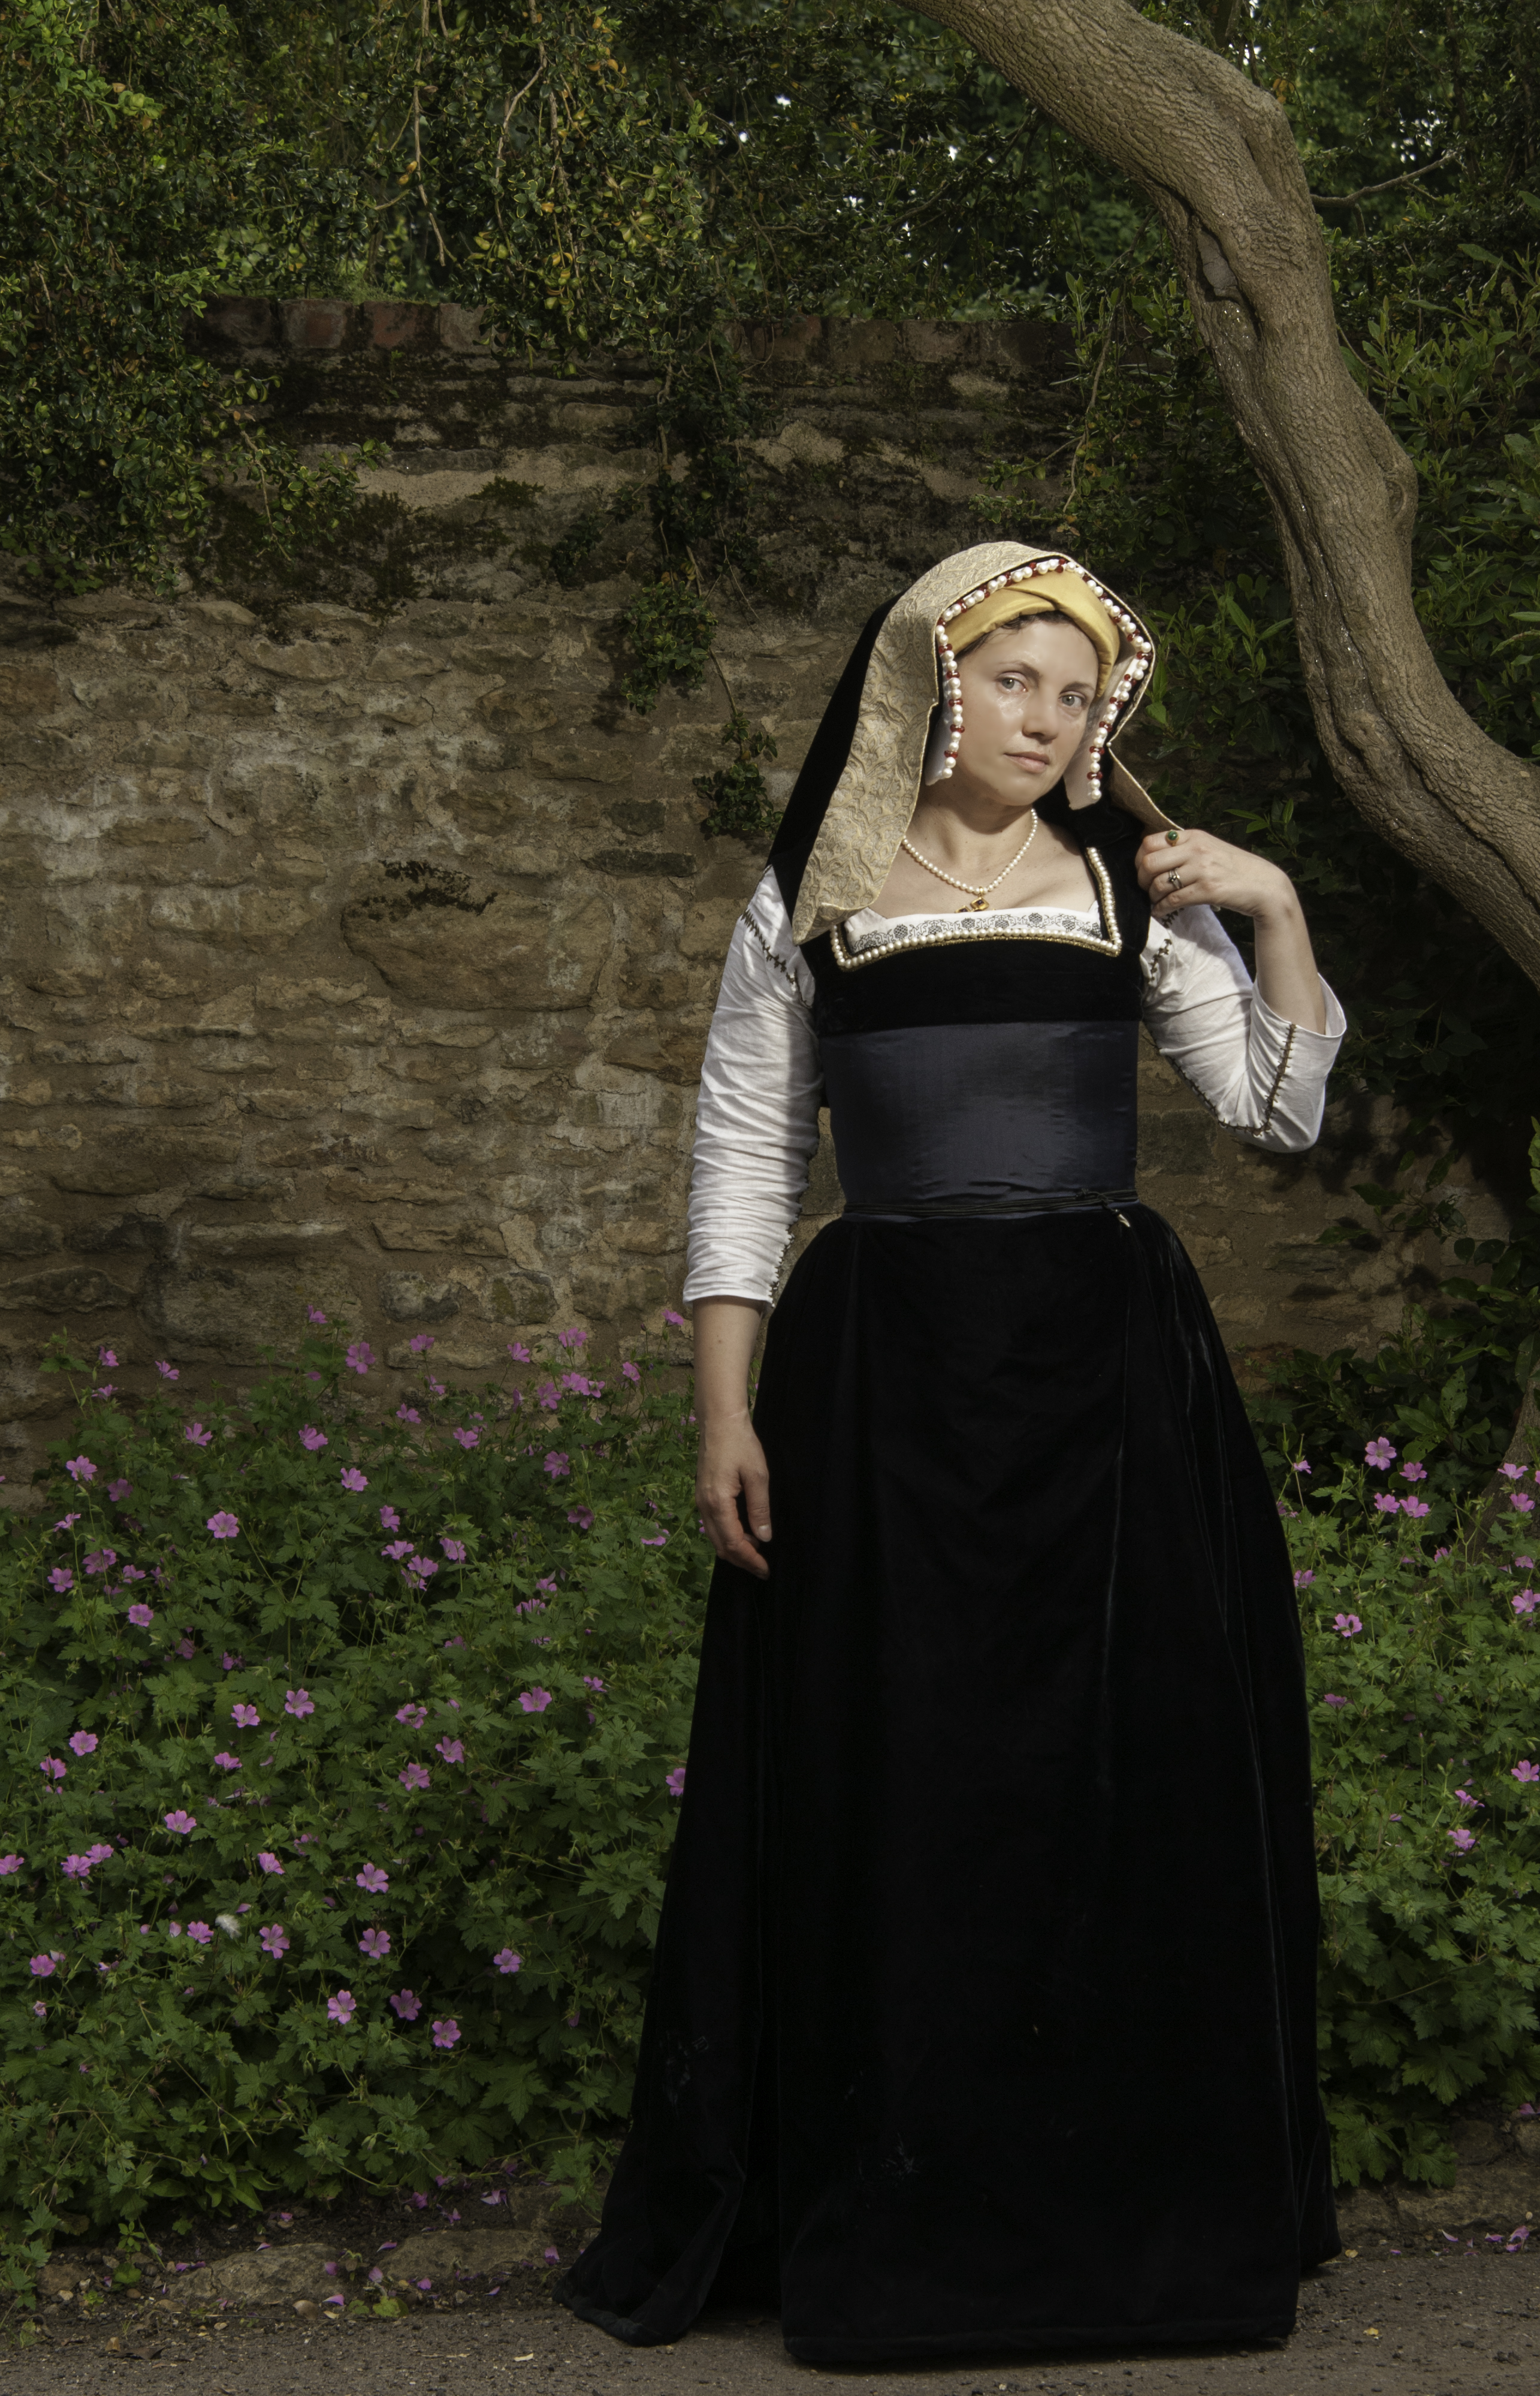 16th century kirtle | A Damsel in This Dress